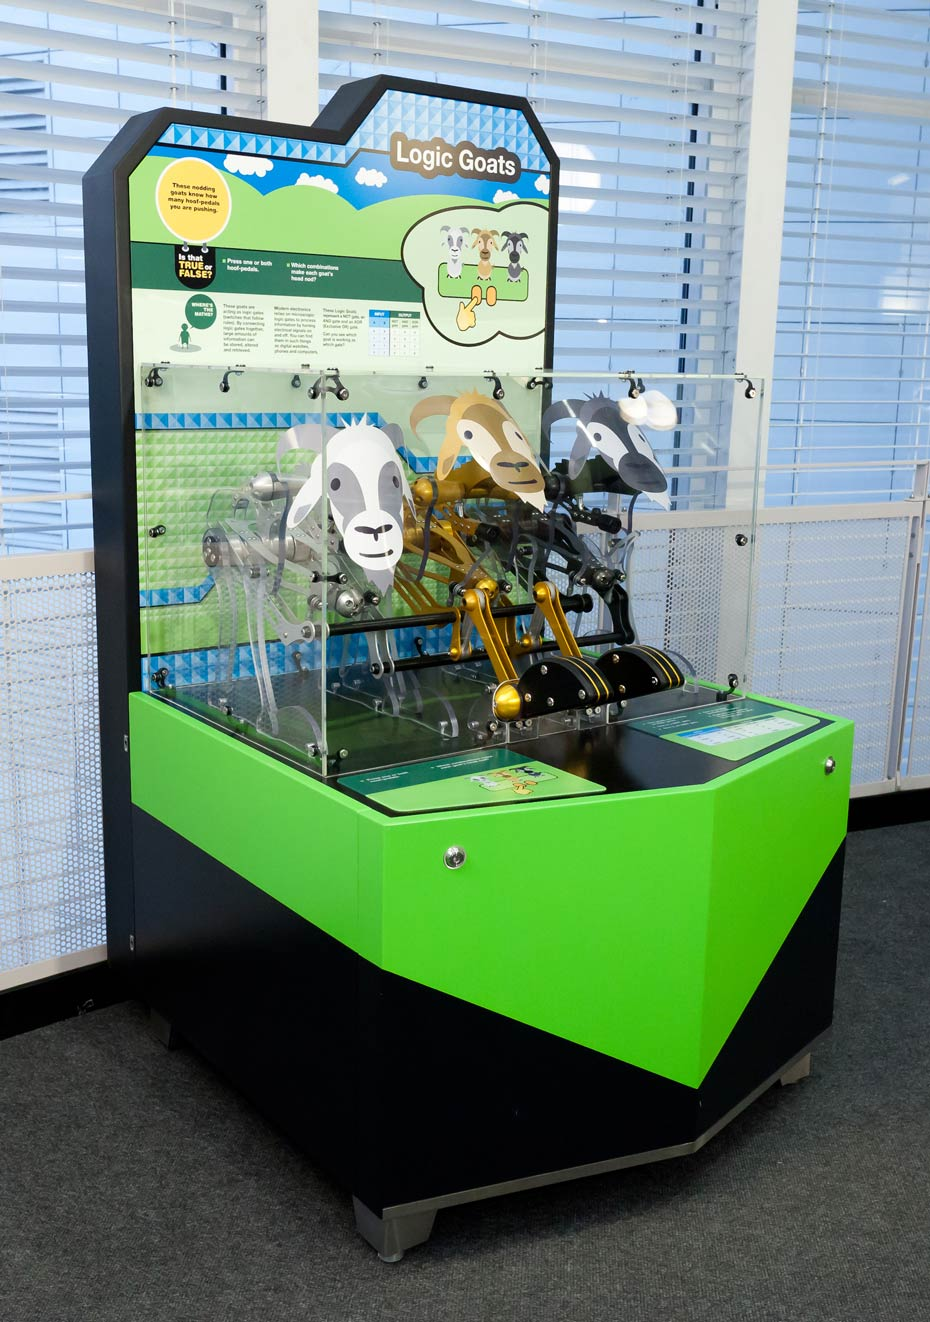 In front of a large windows with white slat blinds, sits a green, black, blue and white exhibit that has a display table enclosed in perspex at the front and an information panel at the back. There are three mechanical goats on the table.